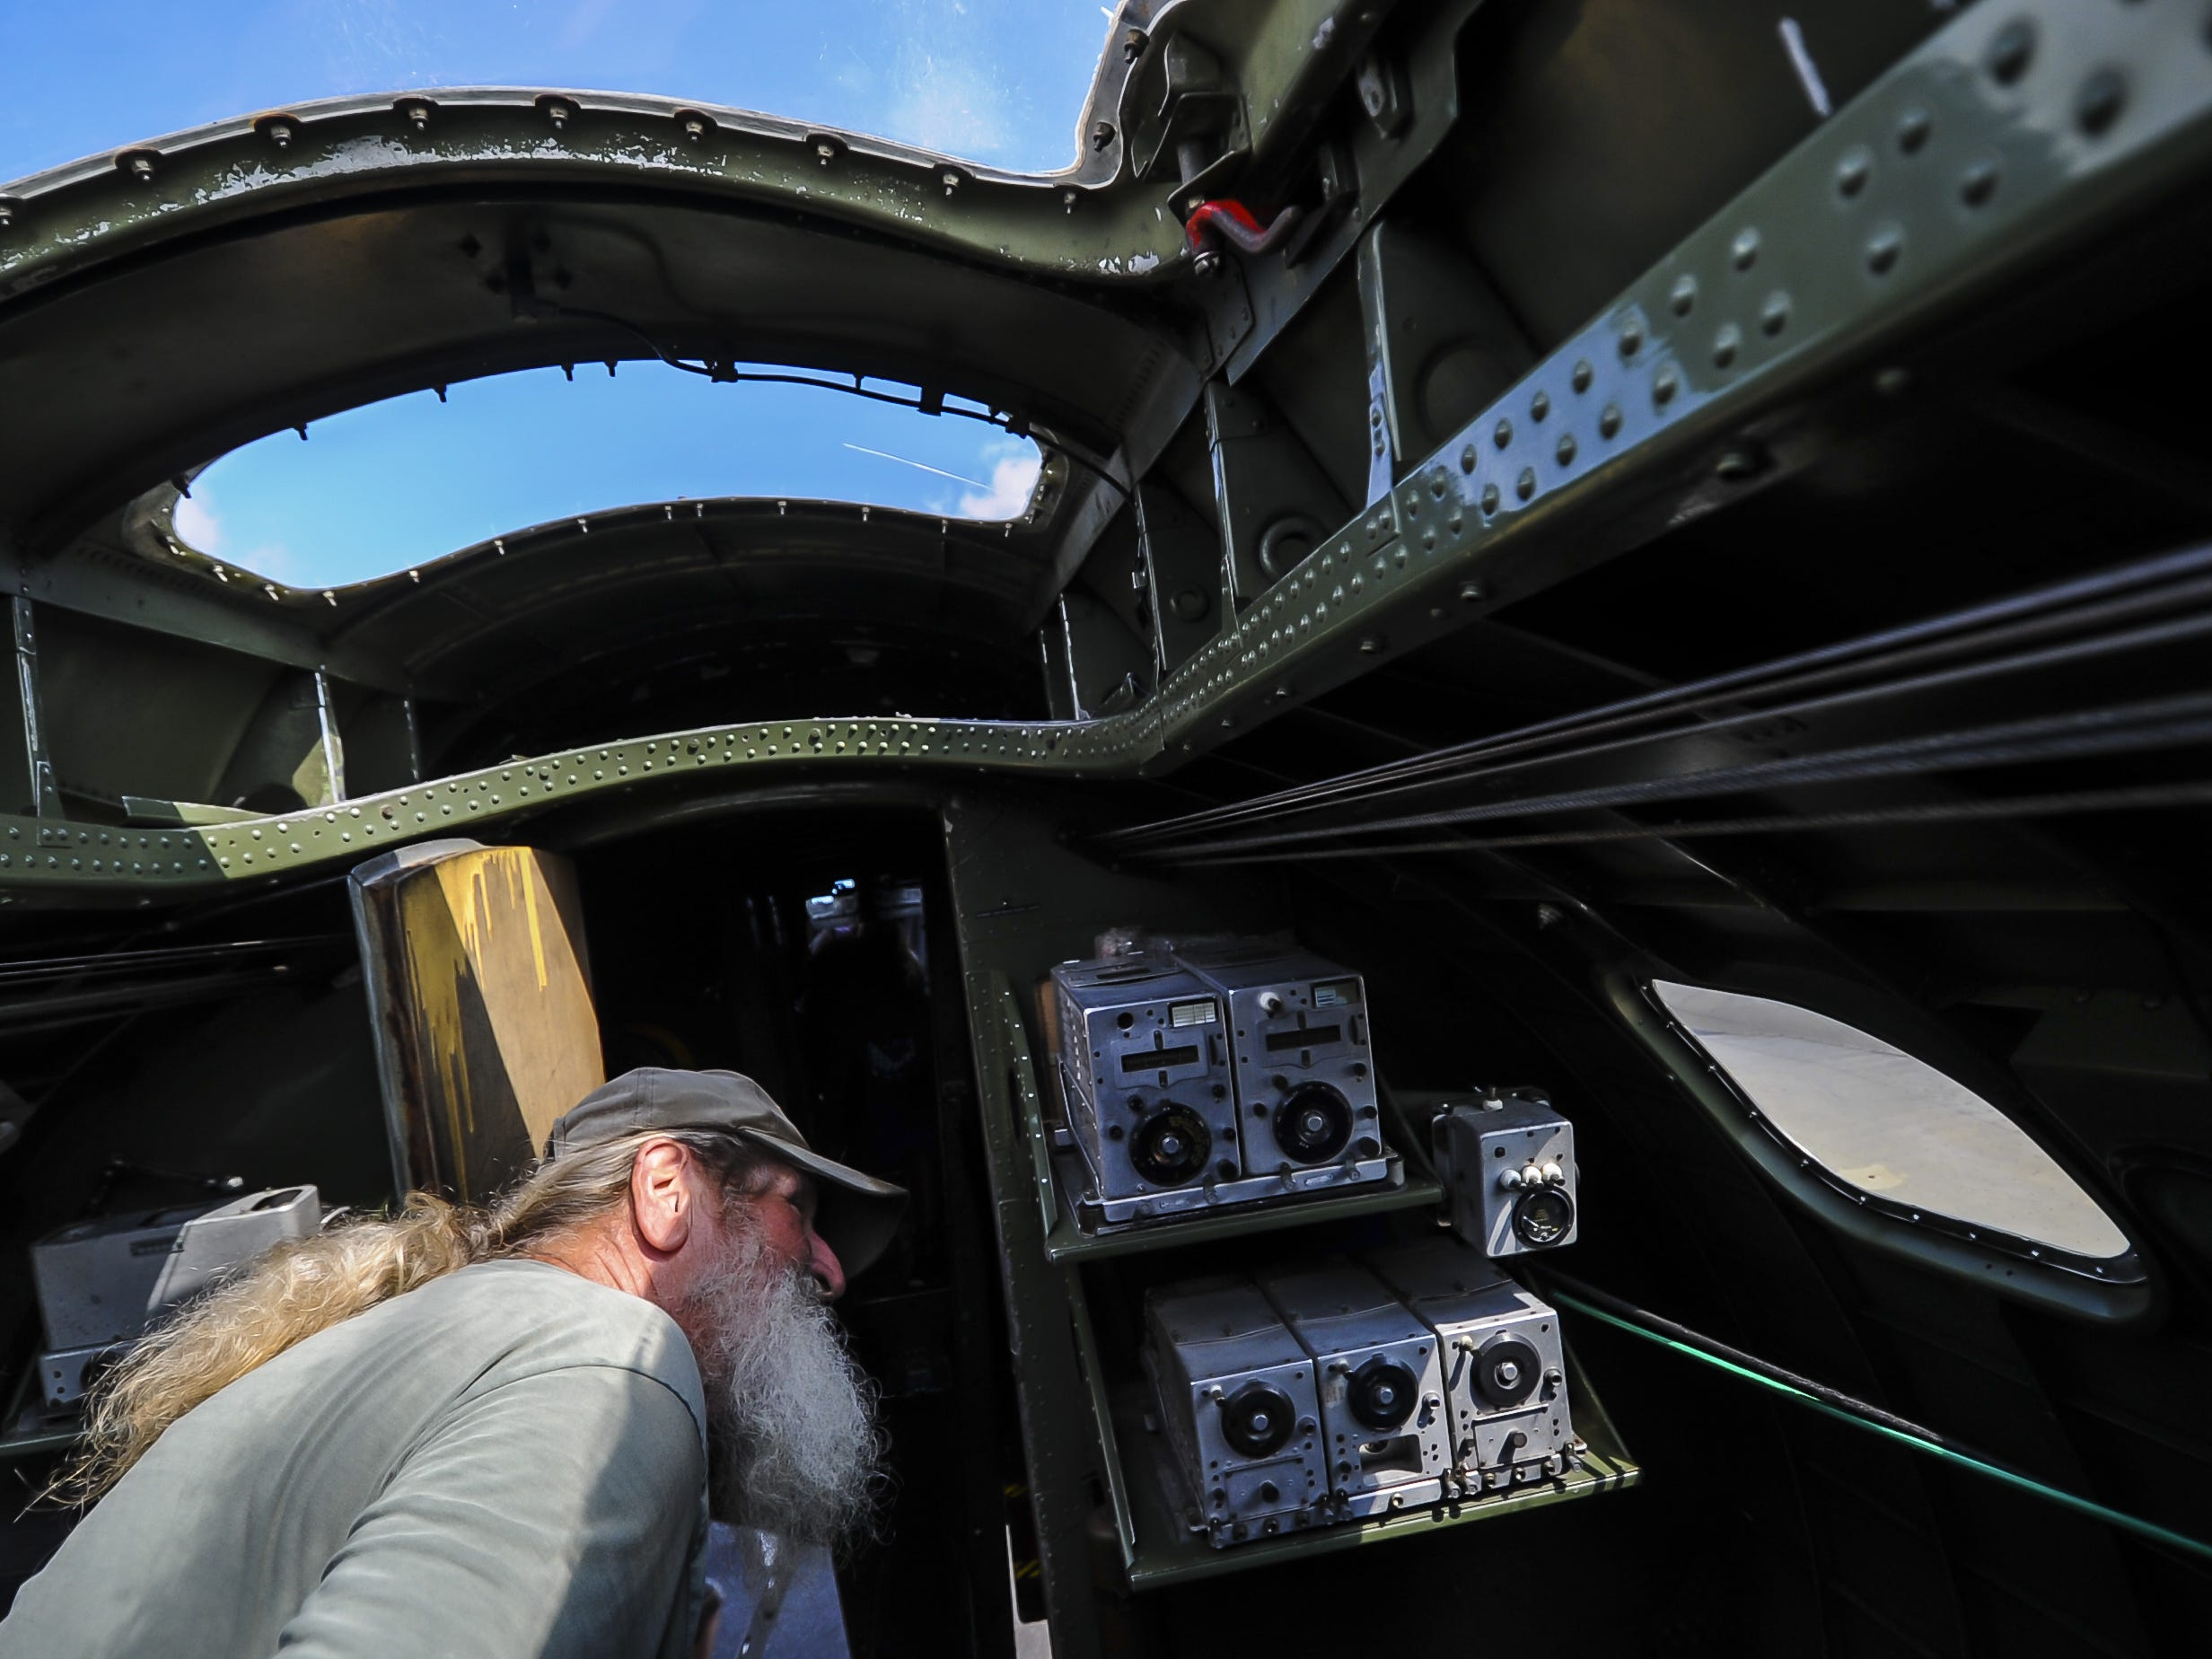 John Riley of Seaside Park, looks over the inside of the B-17 G Flying Fortess, wipes down the World War II fighter plane during the traveling WW II Wings of Freedom Tour exhibit at Momouth Jet Center/Executive Airport in Wall on Aug. 22, 2018.